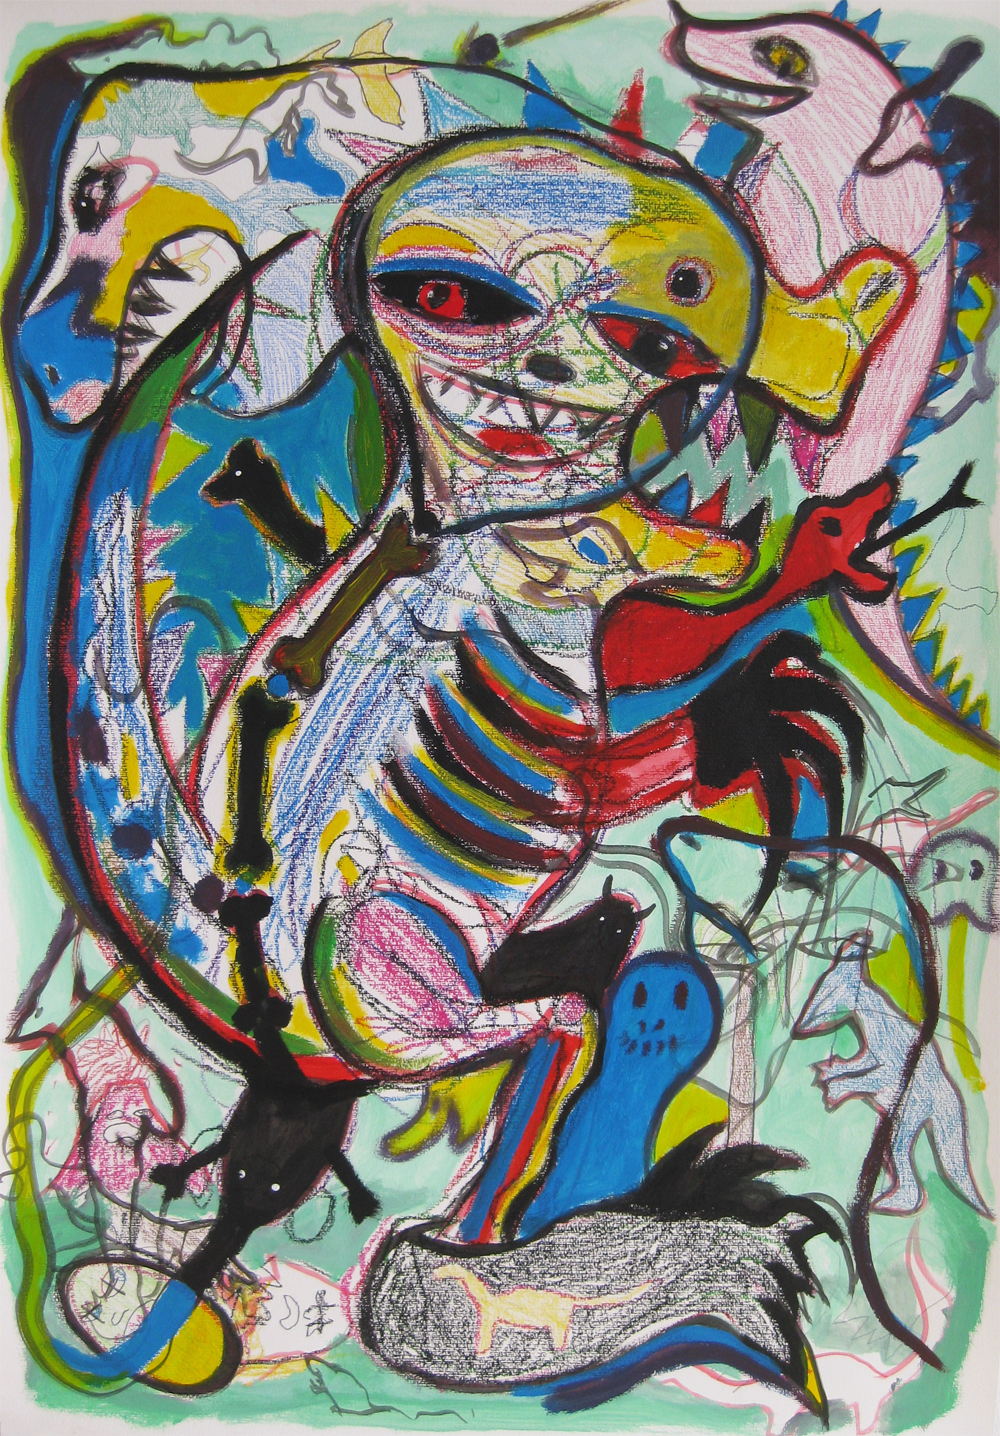 Dino  70 x 100  Mixedmedia on Paper